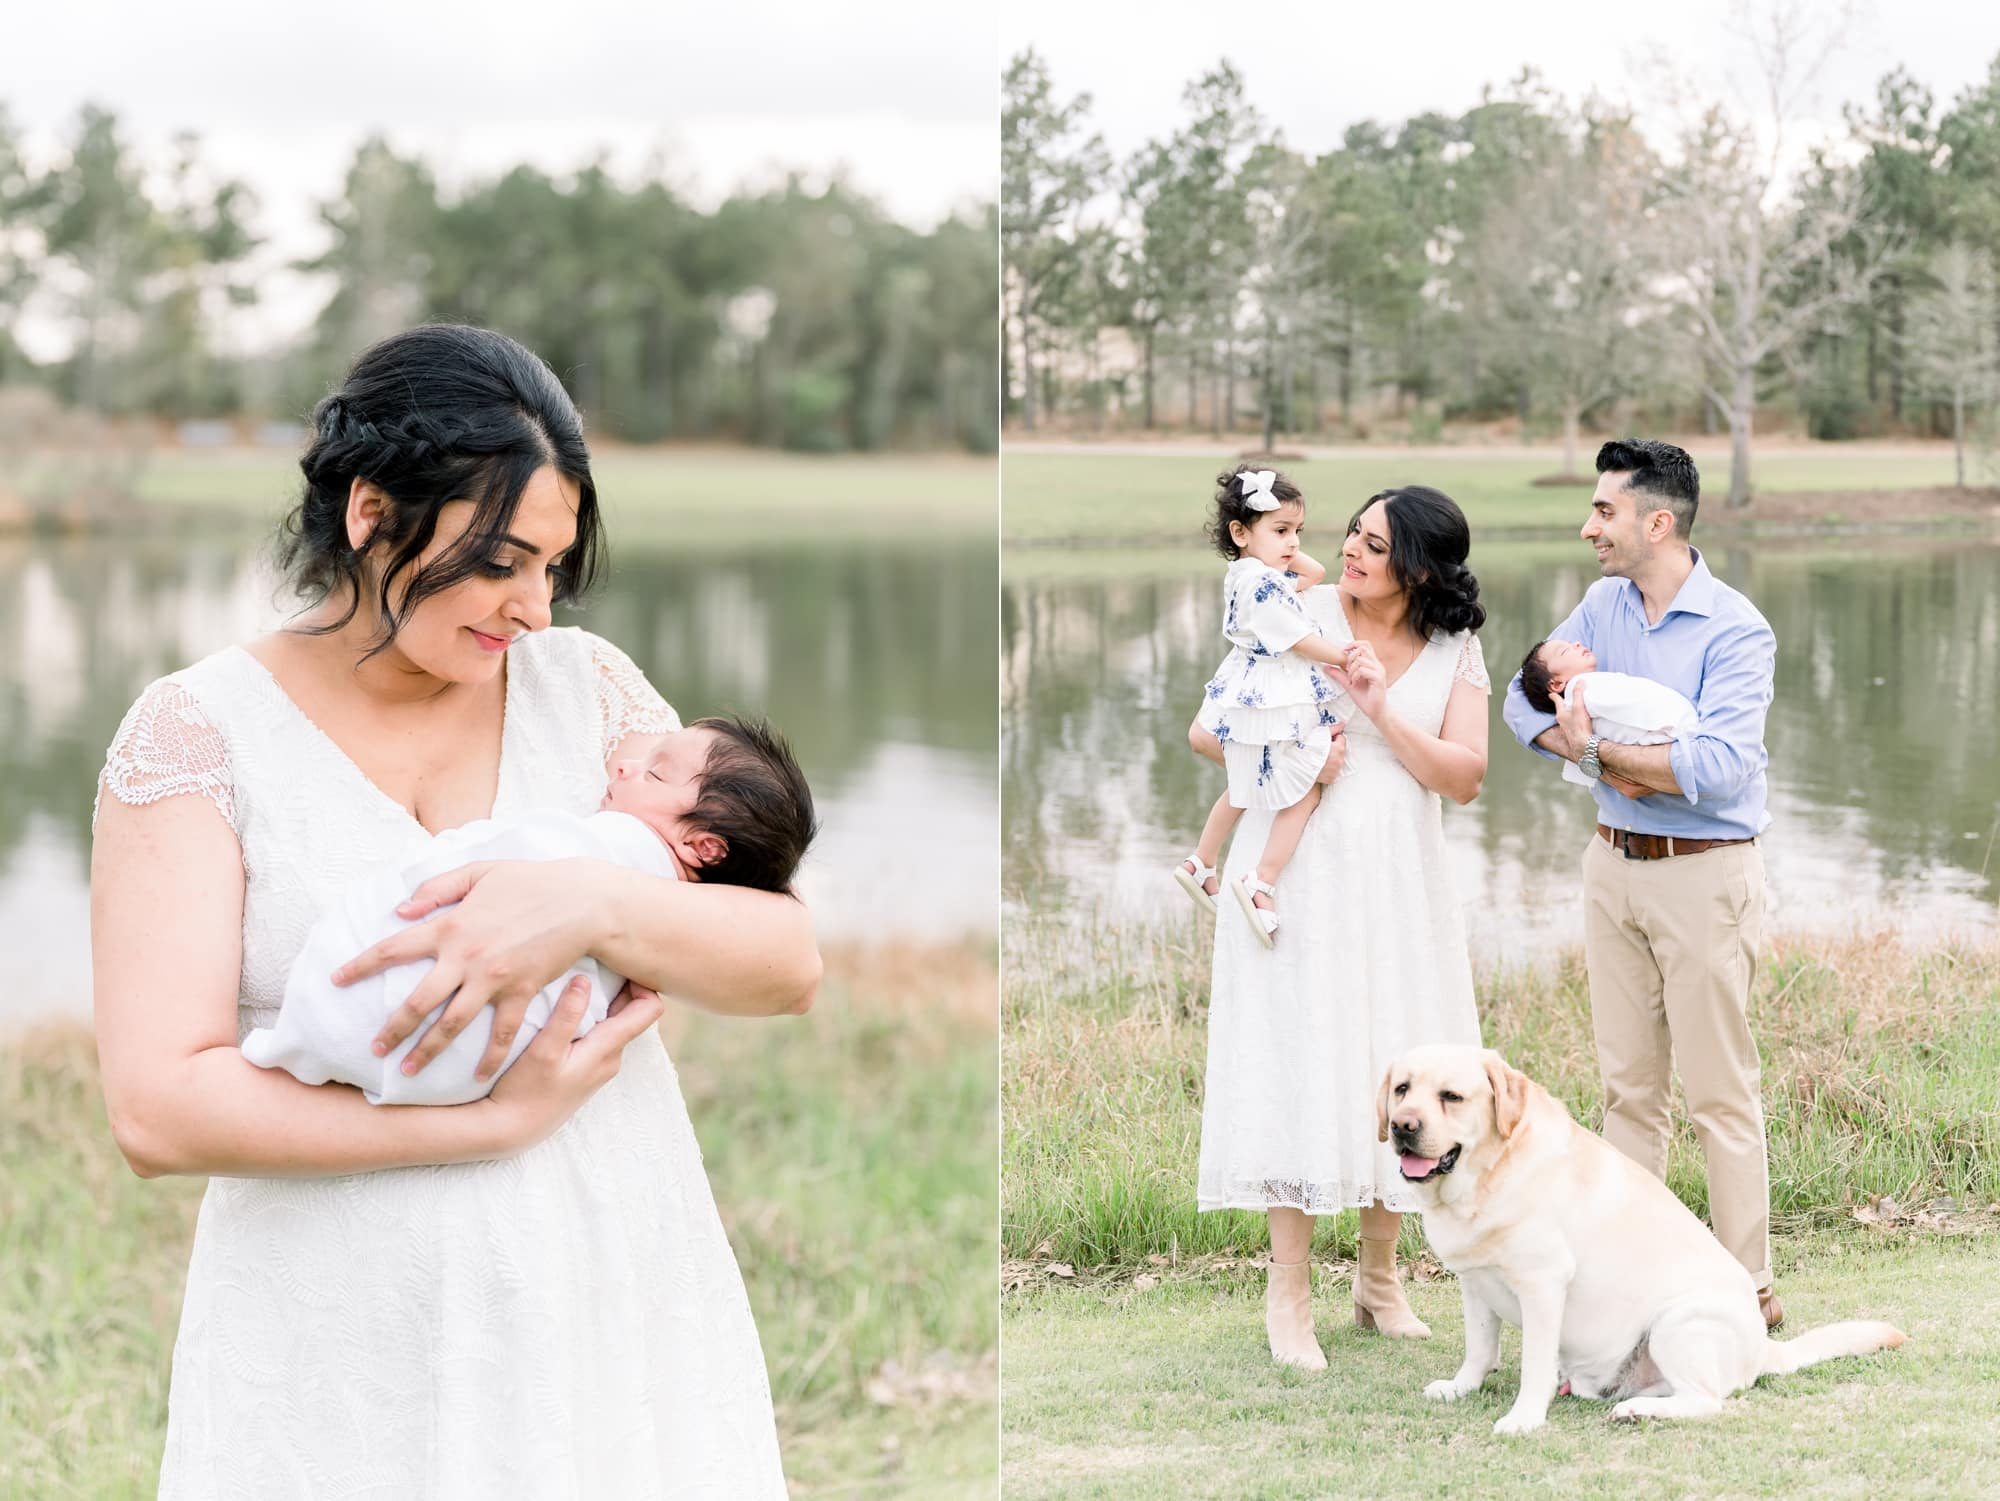 Outdoor newborn photography session in Frisco, TX park. Photos by Aimee Hamilton Photography.